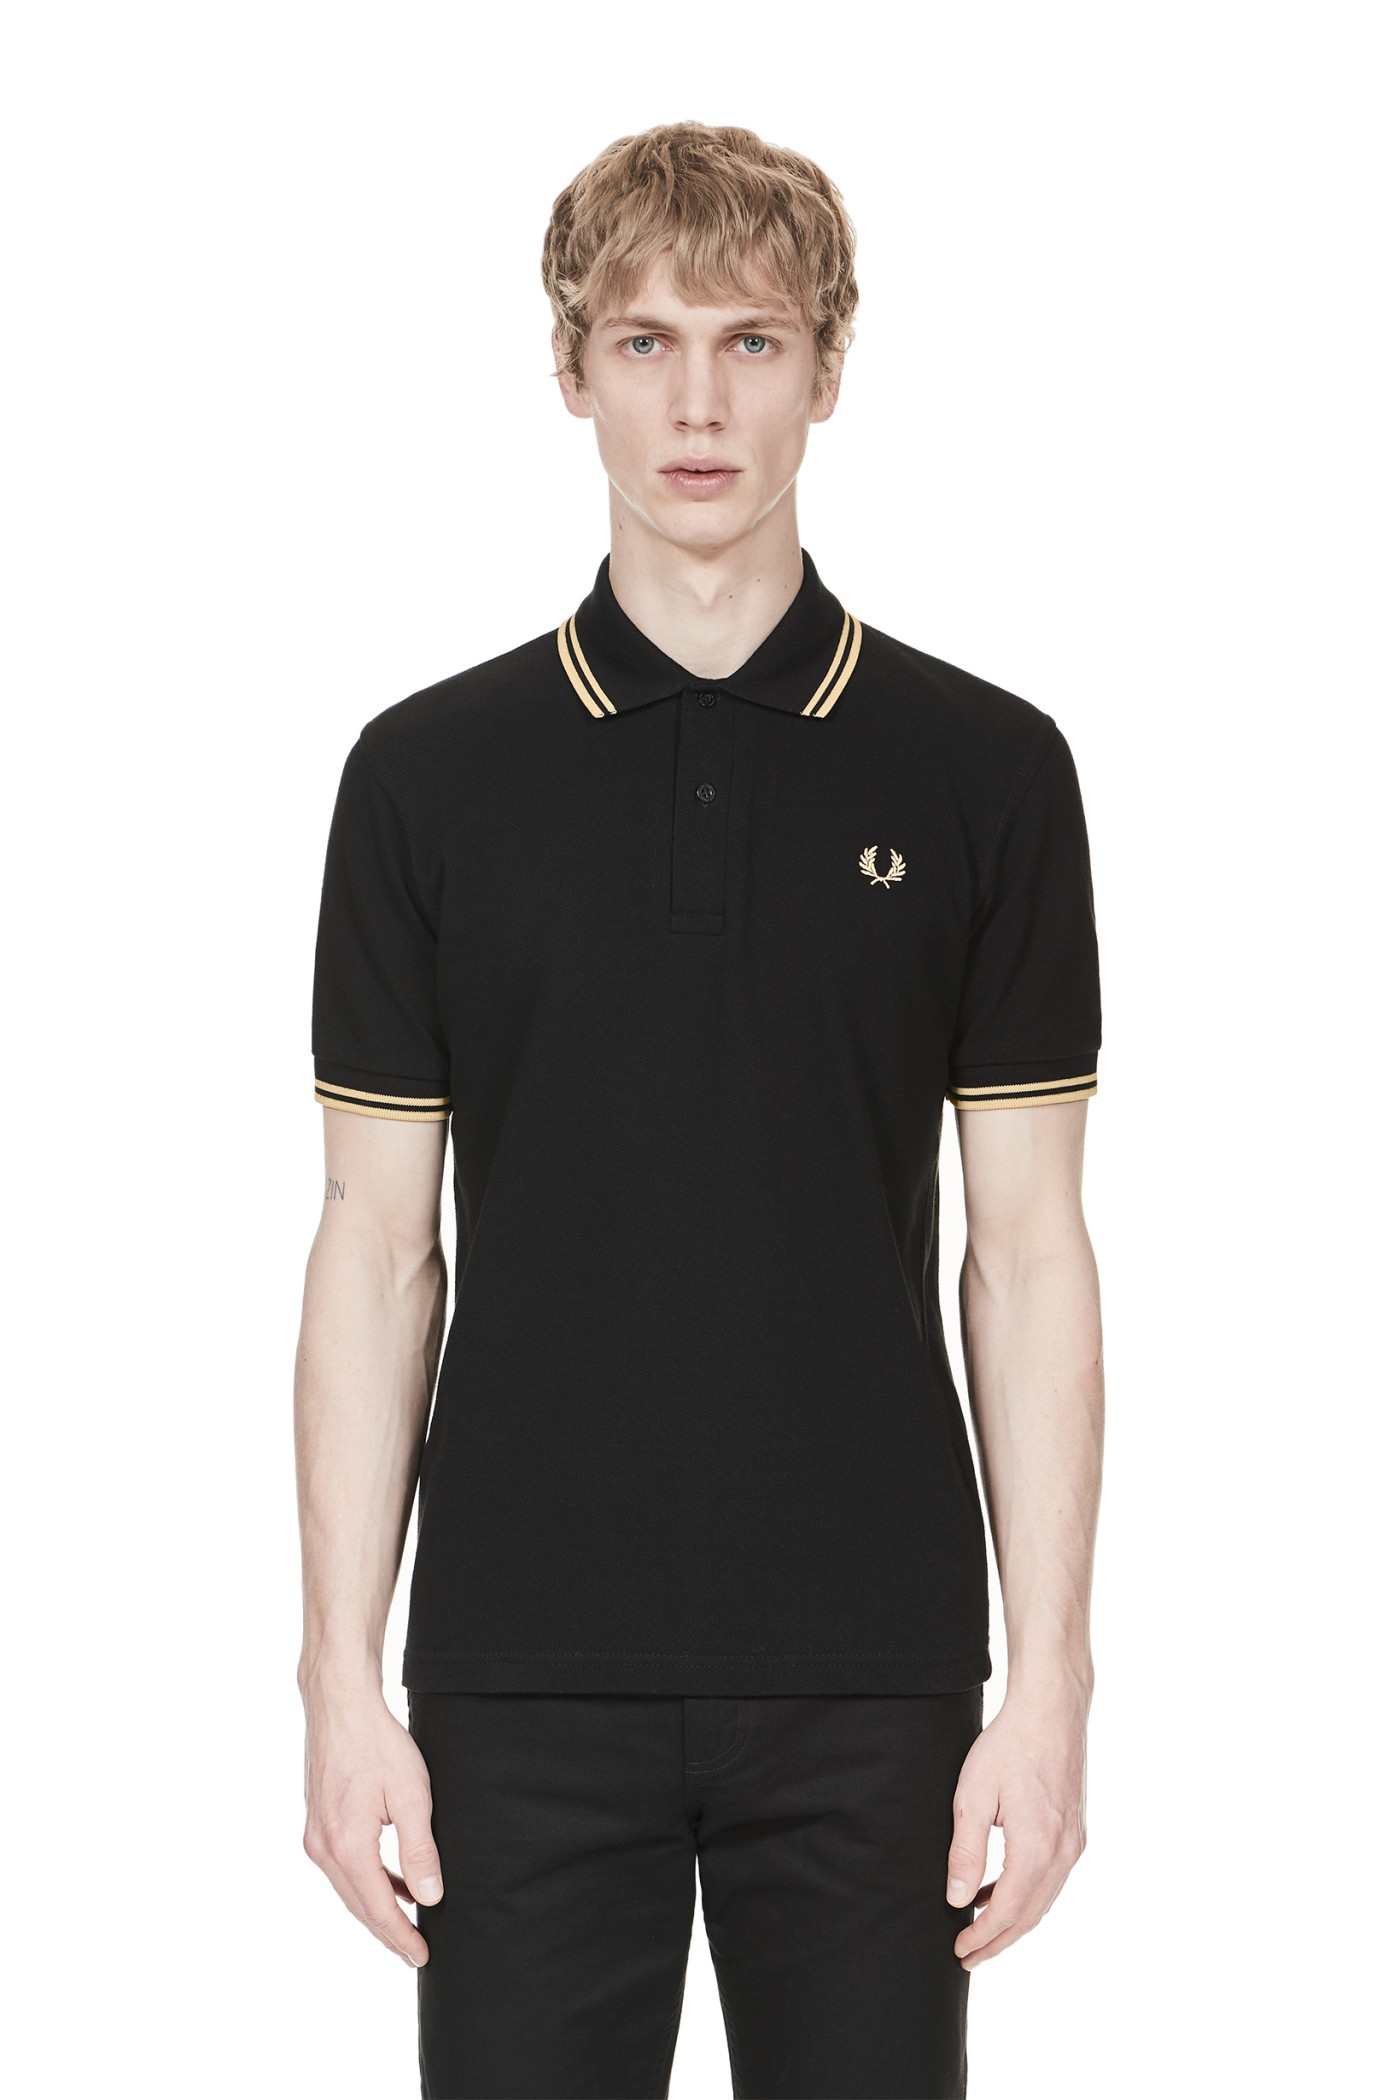 Fred Perry - M12 Black / Champagne / Champagne